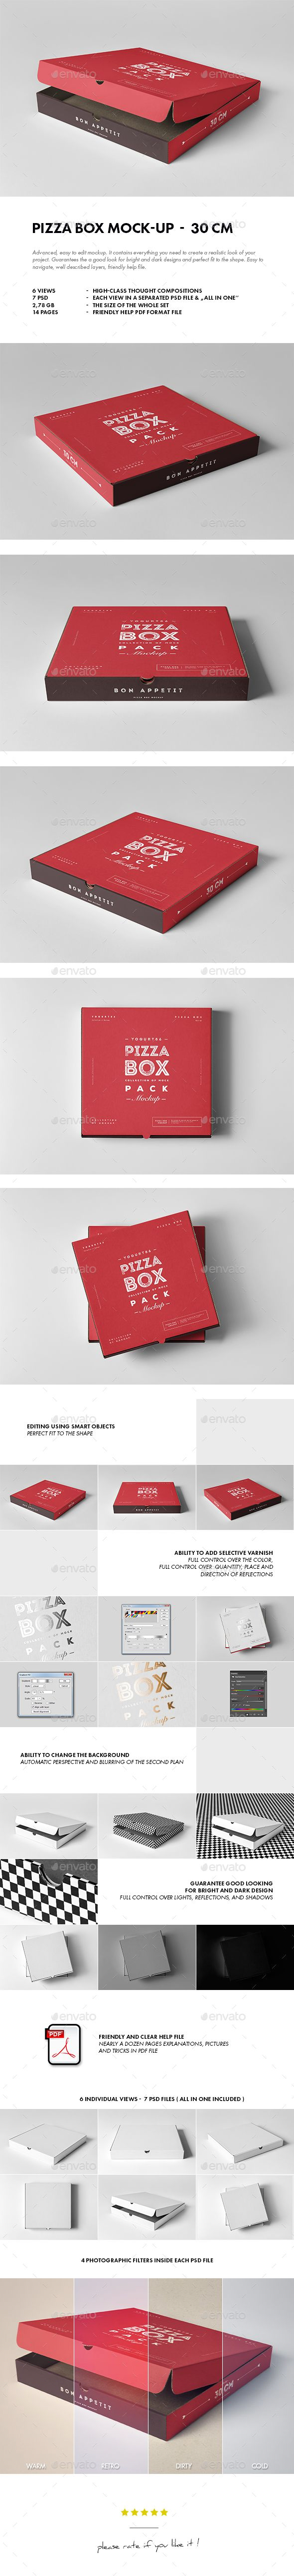 30 Pizza Box #Mock-up - #Food and Drink #Packaging Download here: https://graphicriver.net/item/30-pizza-box-mockup/19536591?ref=alena994